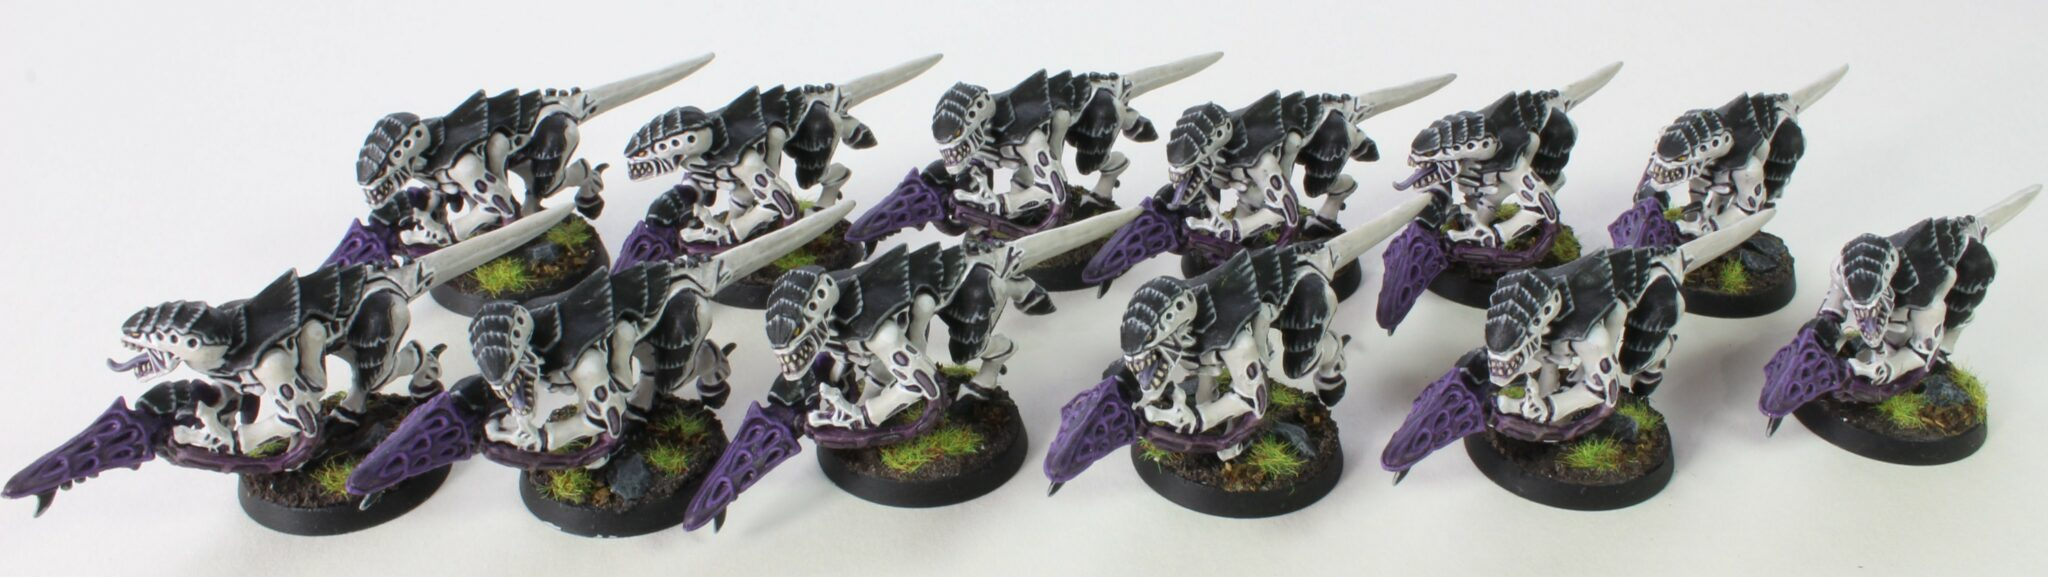 Tyranids - Termagants Devourers - Front Left Side